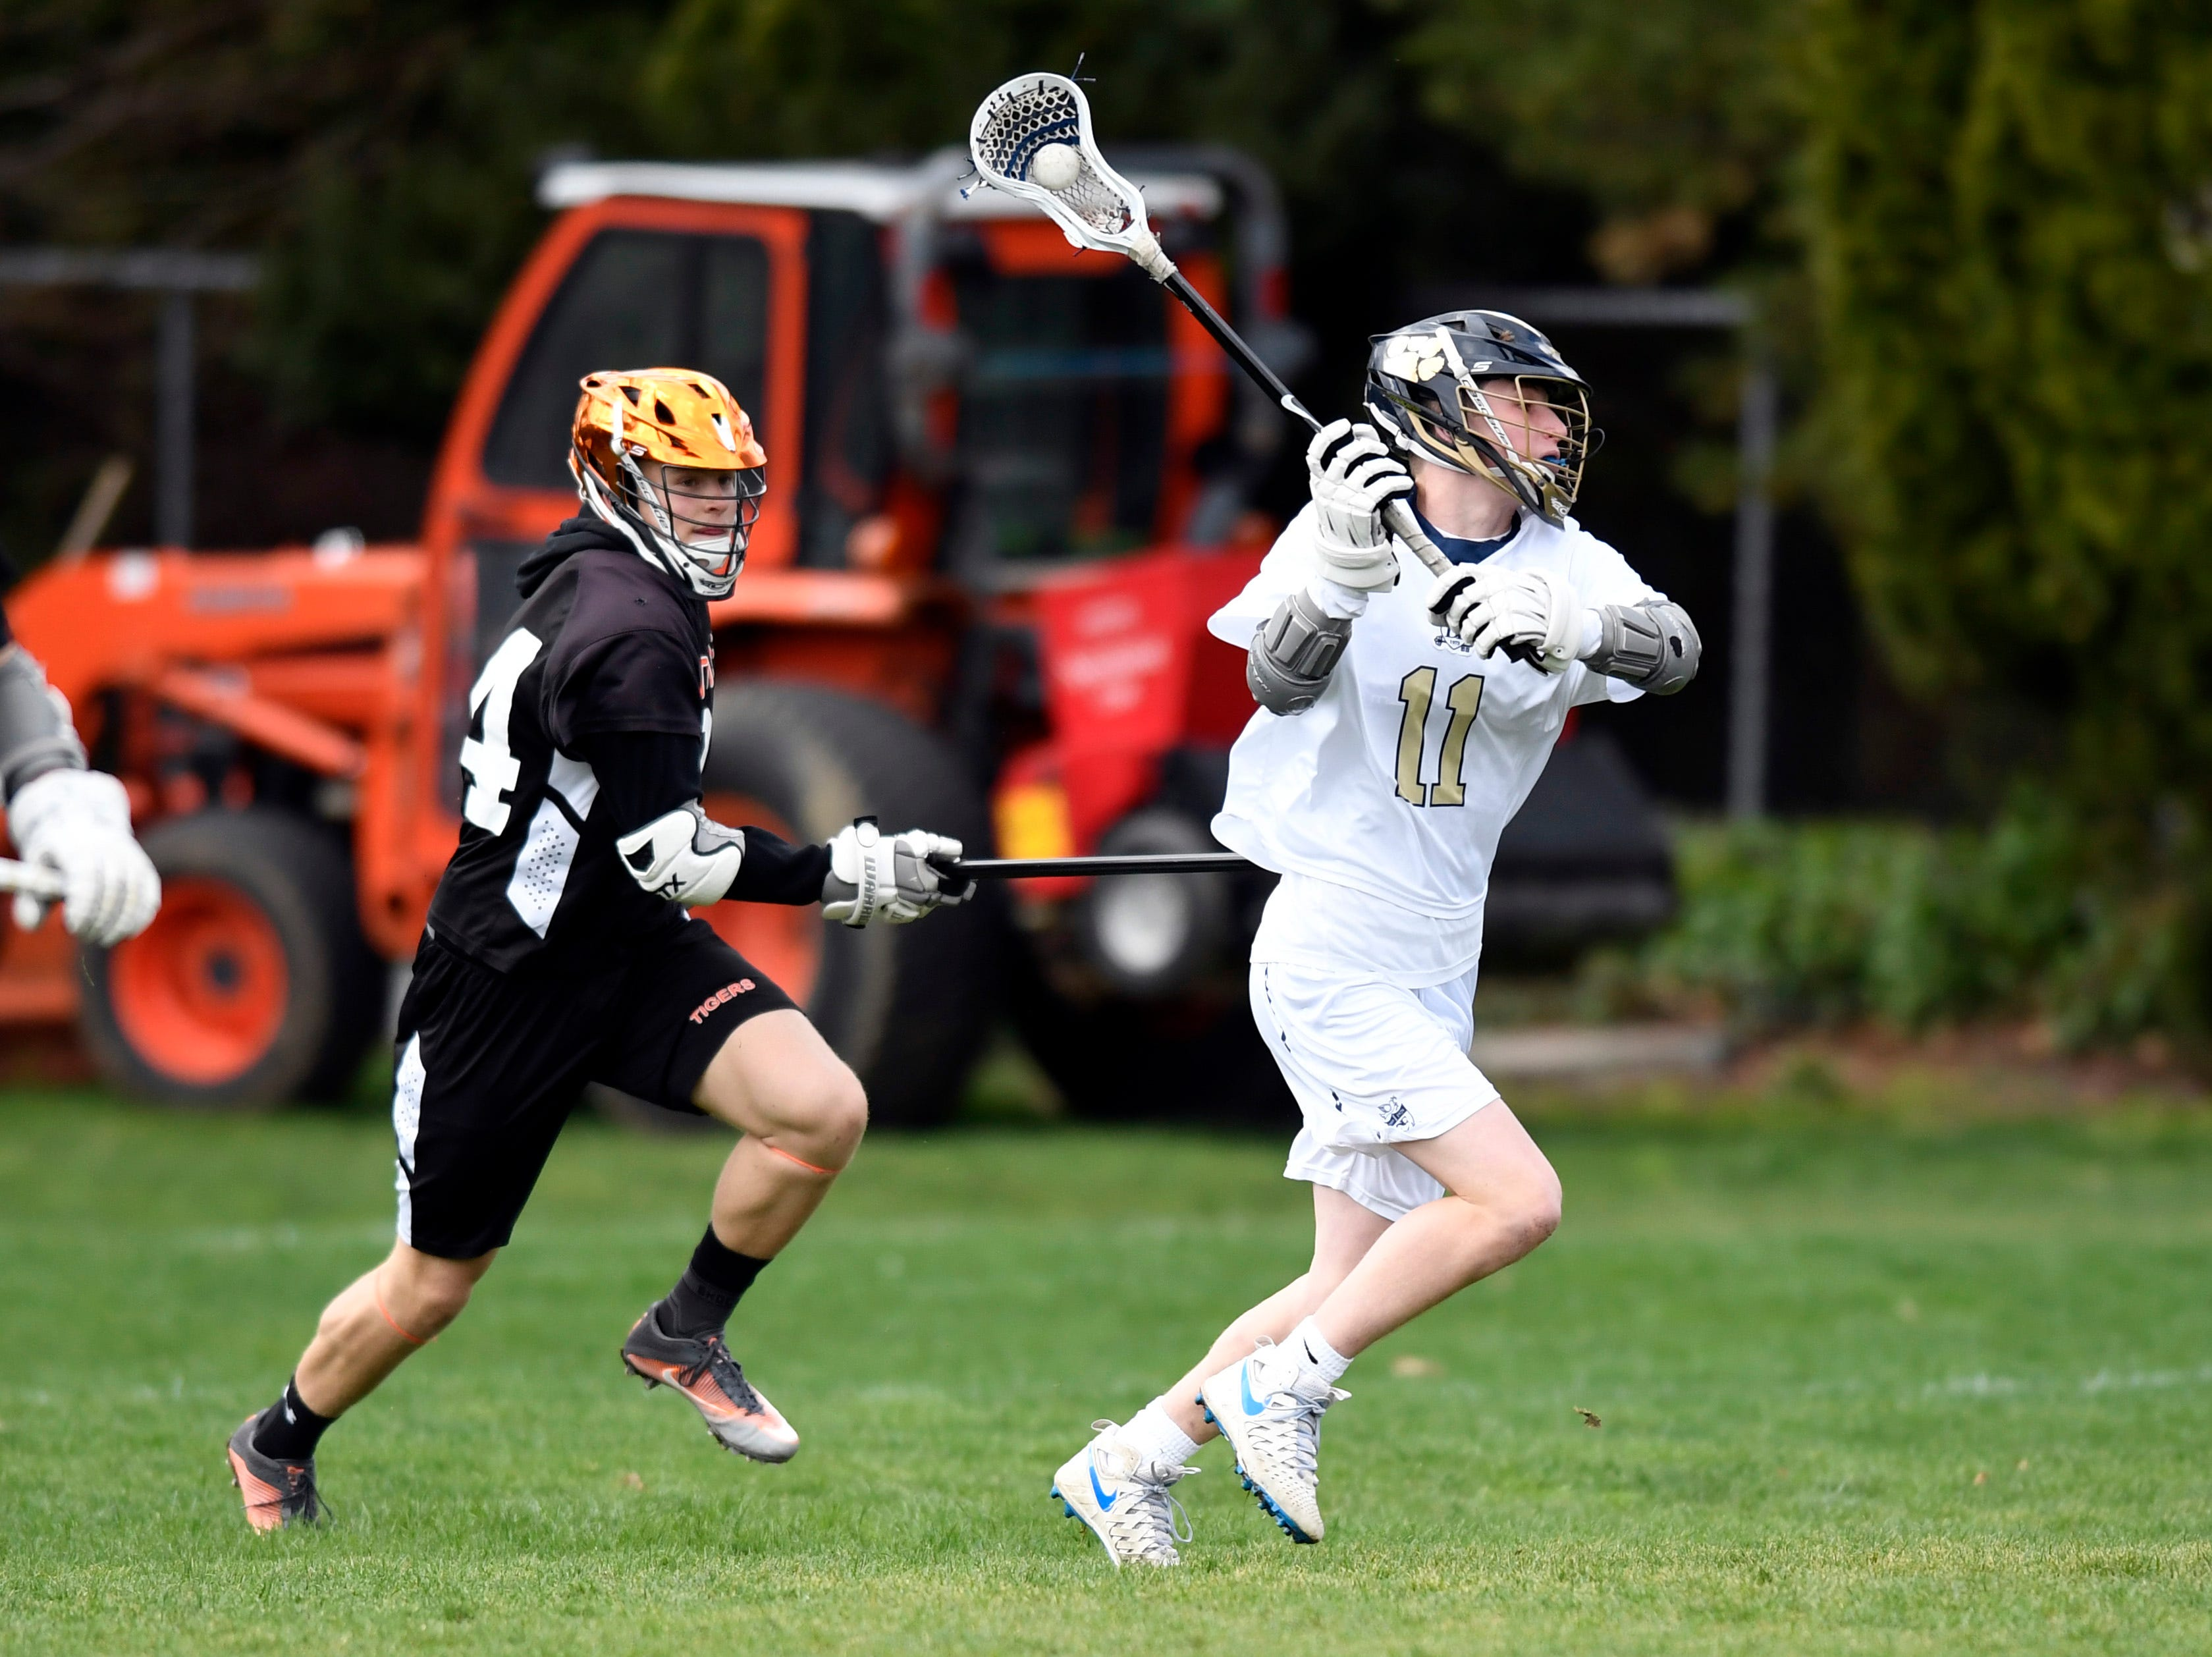 Dwight-Englewood's Jacob Breslow (11) takes a shot on Tenafly goal on Monday, April 15, 2019, in Englewood.